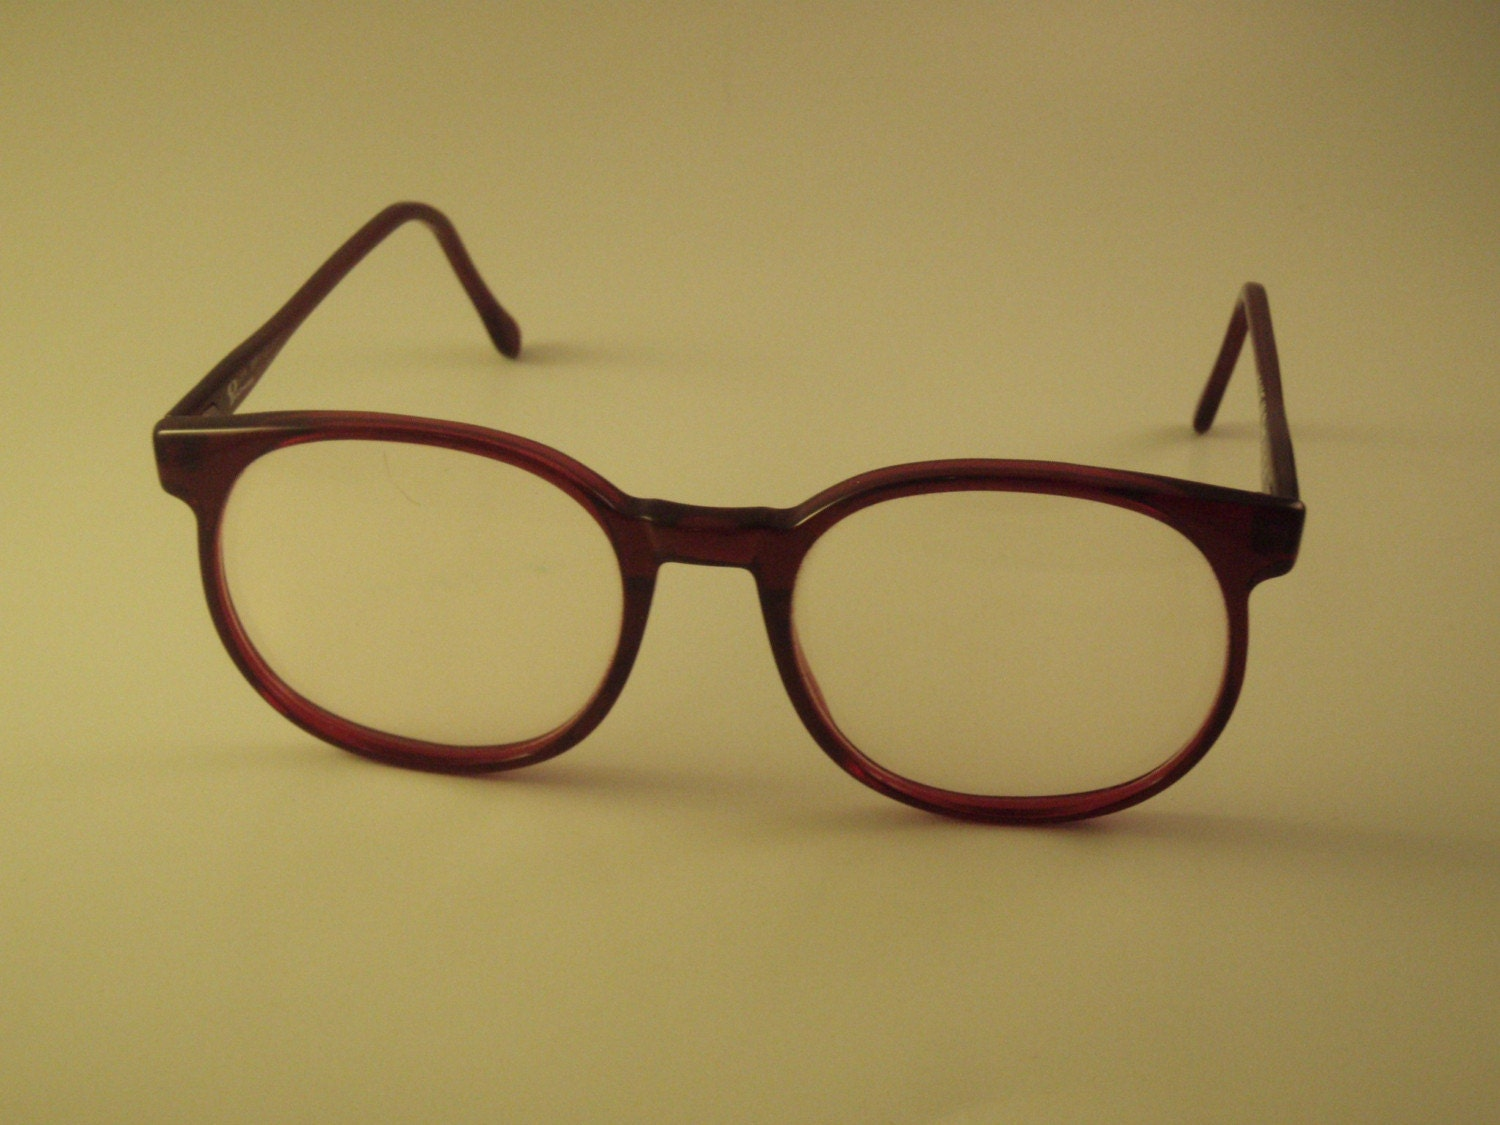 Big Plastic Frame Glasses : BIG 80s Eyeglasses plastic frames